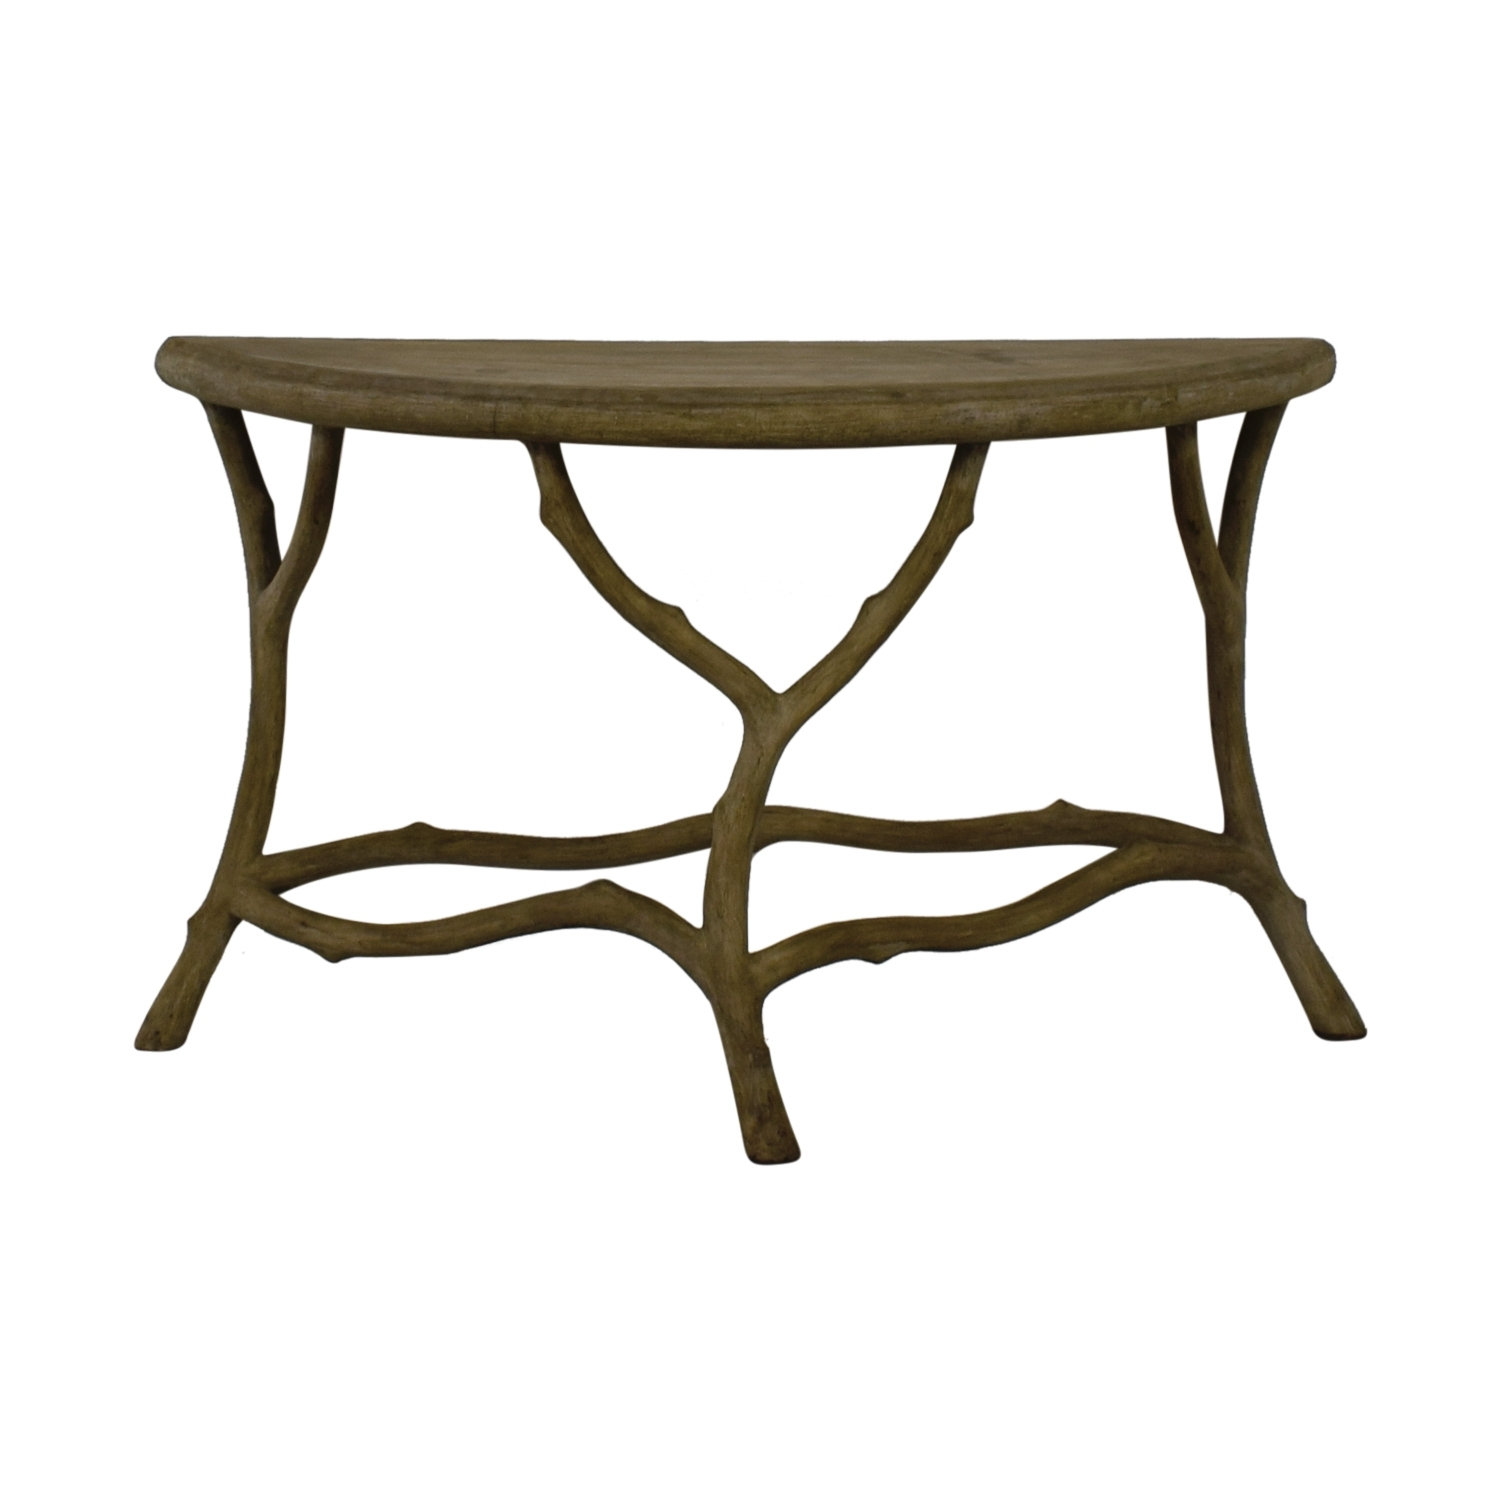 90% Off - Horchow Horchow Grey Faux Bois Half Table / Tables intended for Faux Bois Coffee Tables (Image 2 of 30)